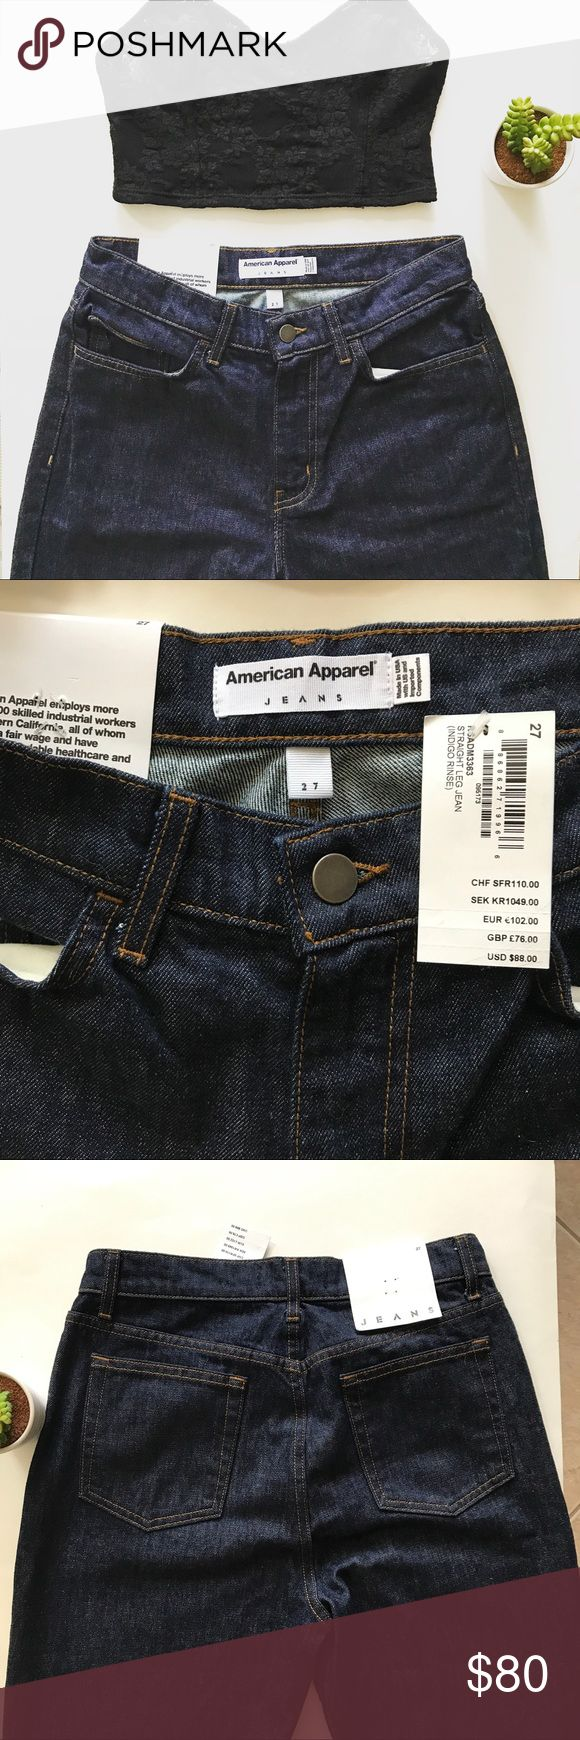 American Apparel Straight Leg Jean NWT RARE Original American Apparel Straight Leg Jean. Size 27. Classic Indigo Rinse. Rsadm3363. These iconic jeans are a staple piece & so versatile! Pair with lace for a flirty look. I like wearing these with strappy heels or ankle booties. Brand new with tags. American Apparel has shut down and these are rare! Open to offers. Bundle & save. I aim to ship the same day. American Apparel Jeans Straight Leg